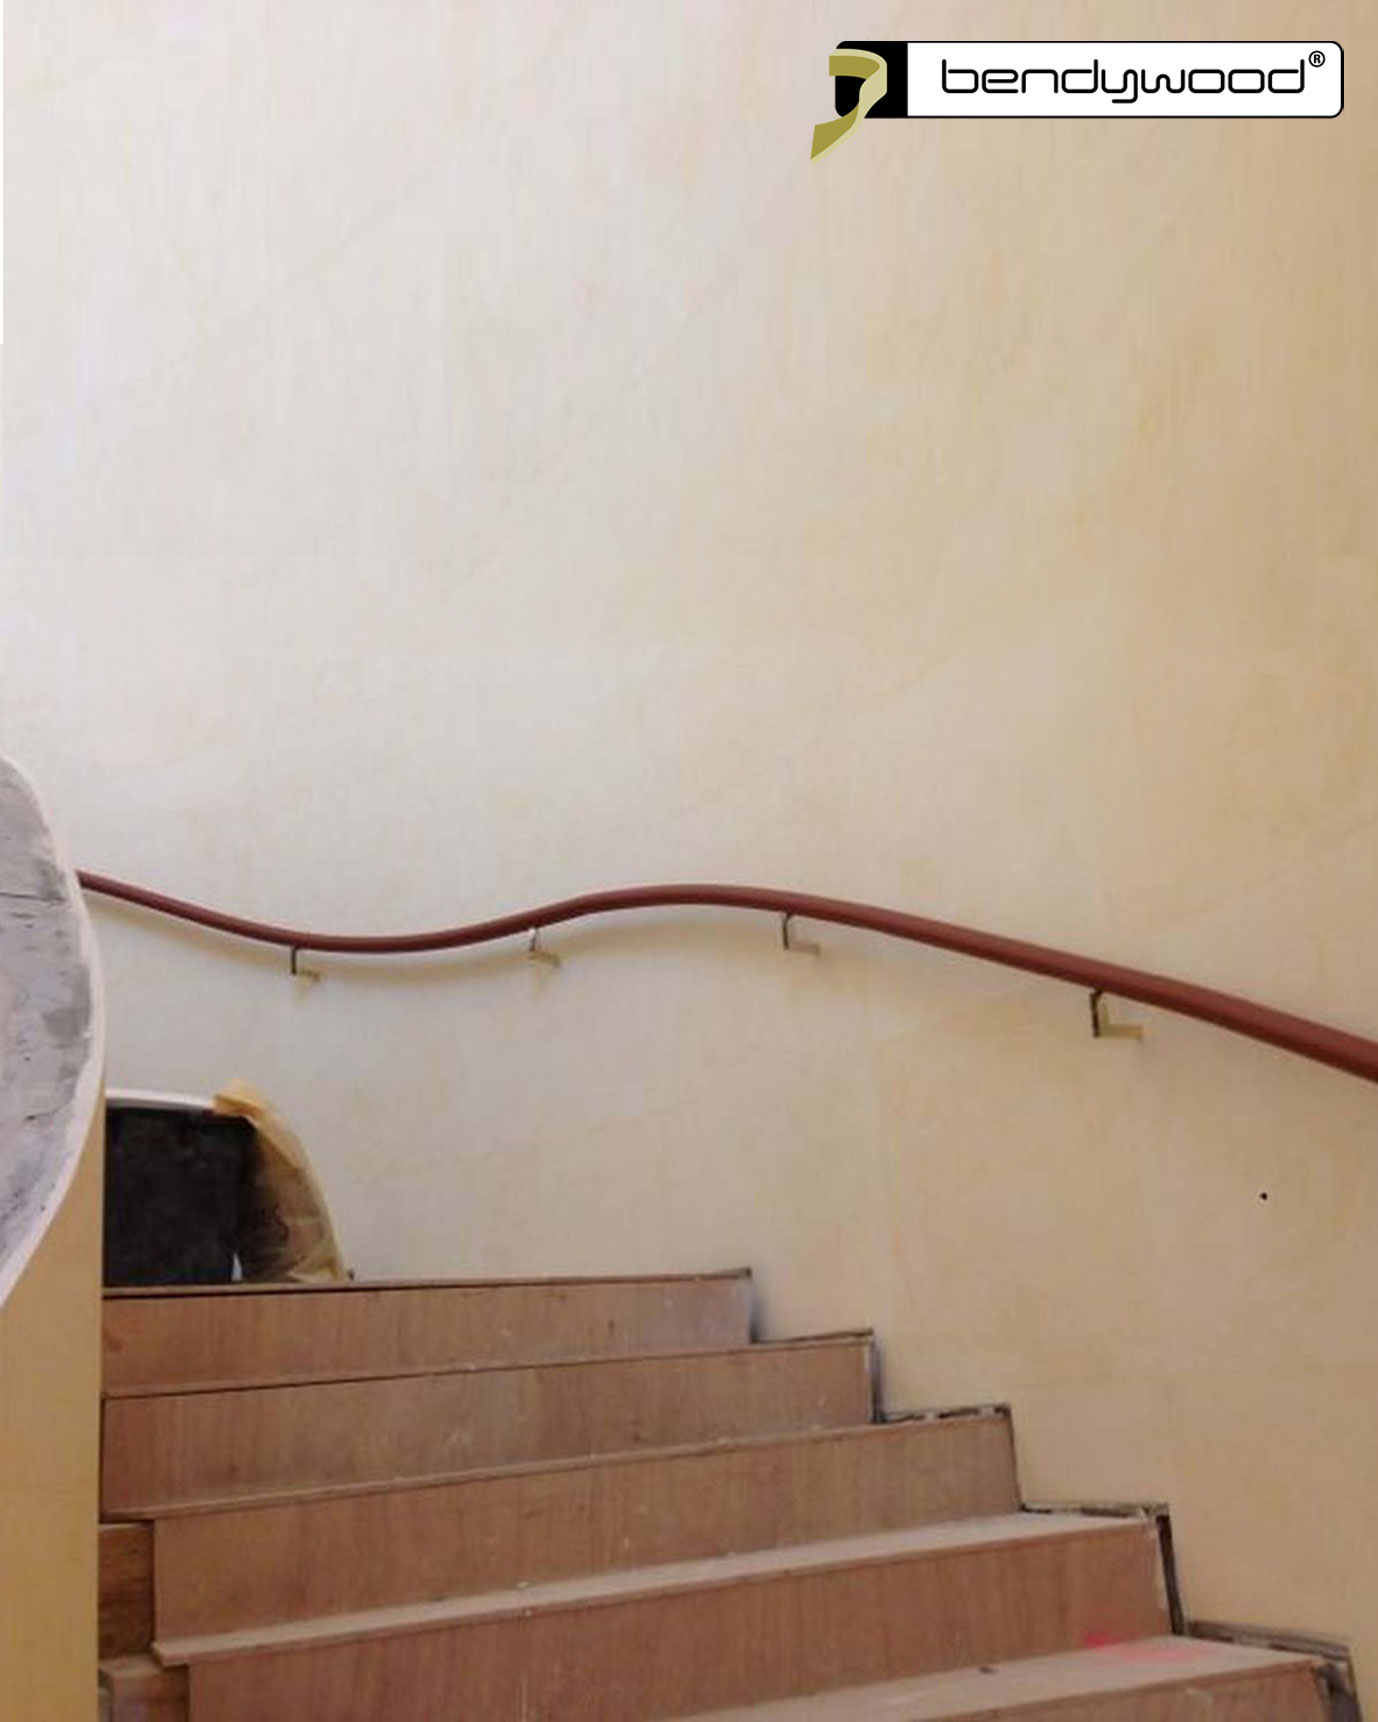 Curved wooden Bendywood® handrails 47mm coated with leather